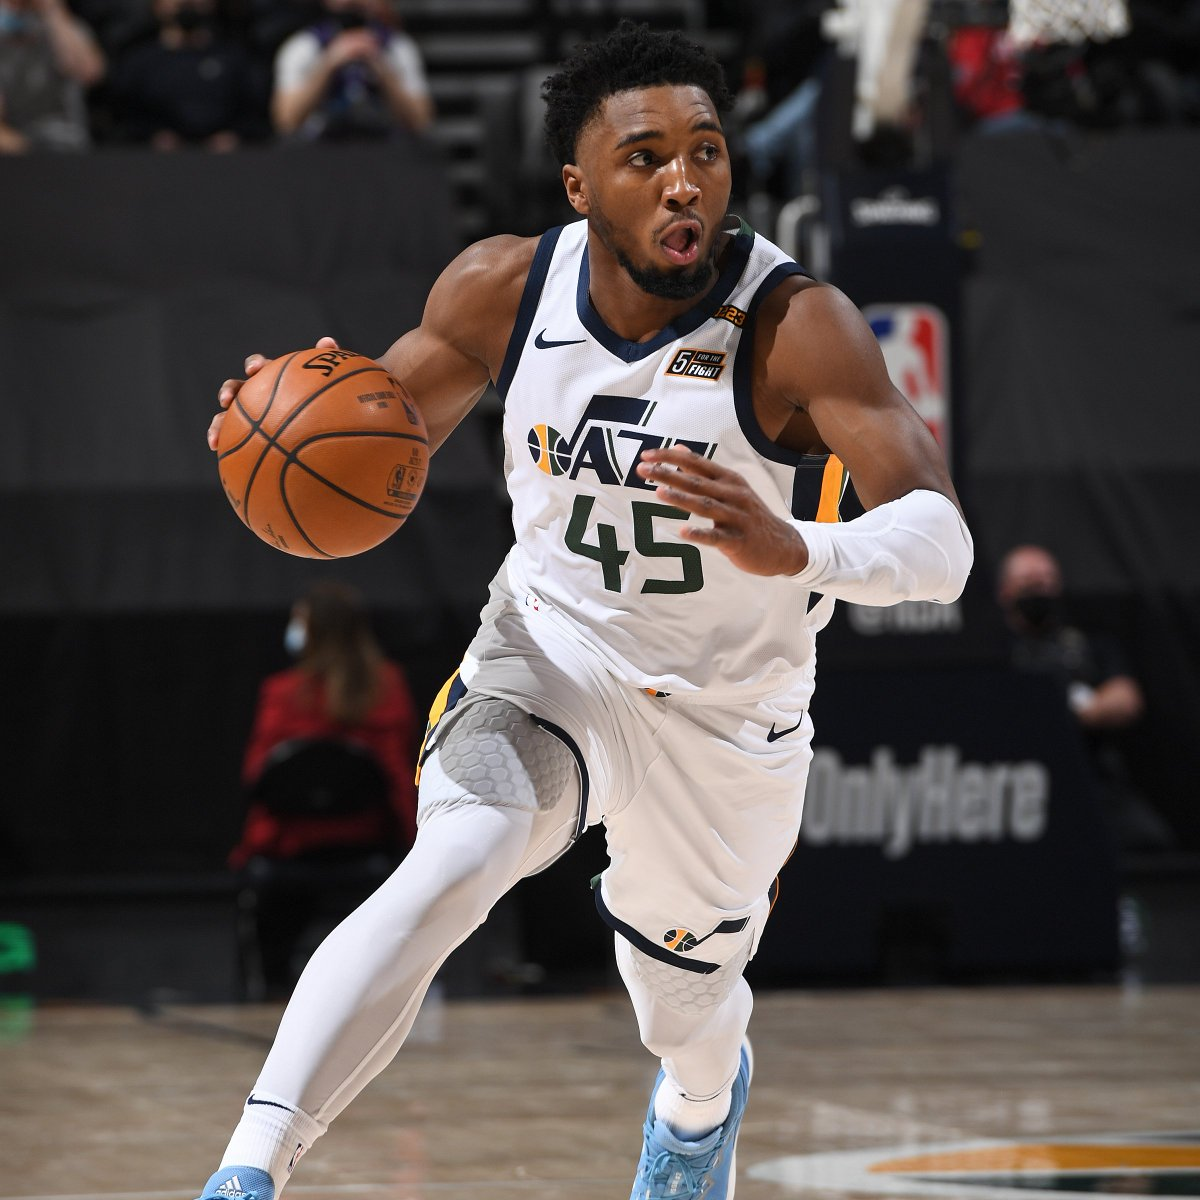 Donovan Mitchell is the fastest player in NBA history to make 600 threes (240 games). Previous fastest was Buddy Hield. https://t.co/MvTl2ioJwQ